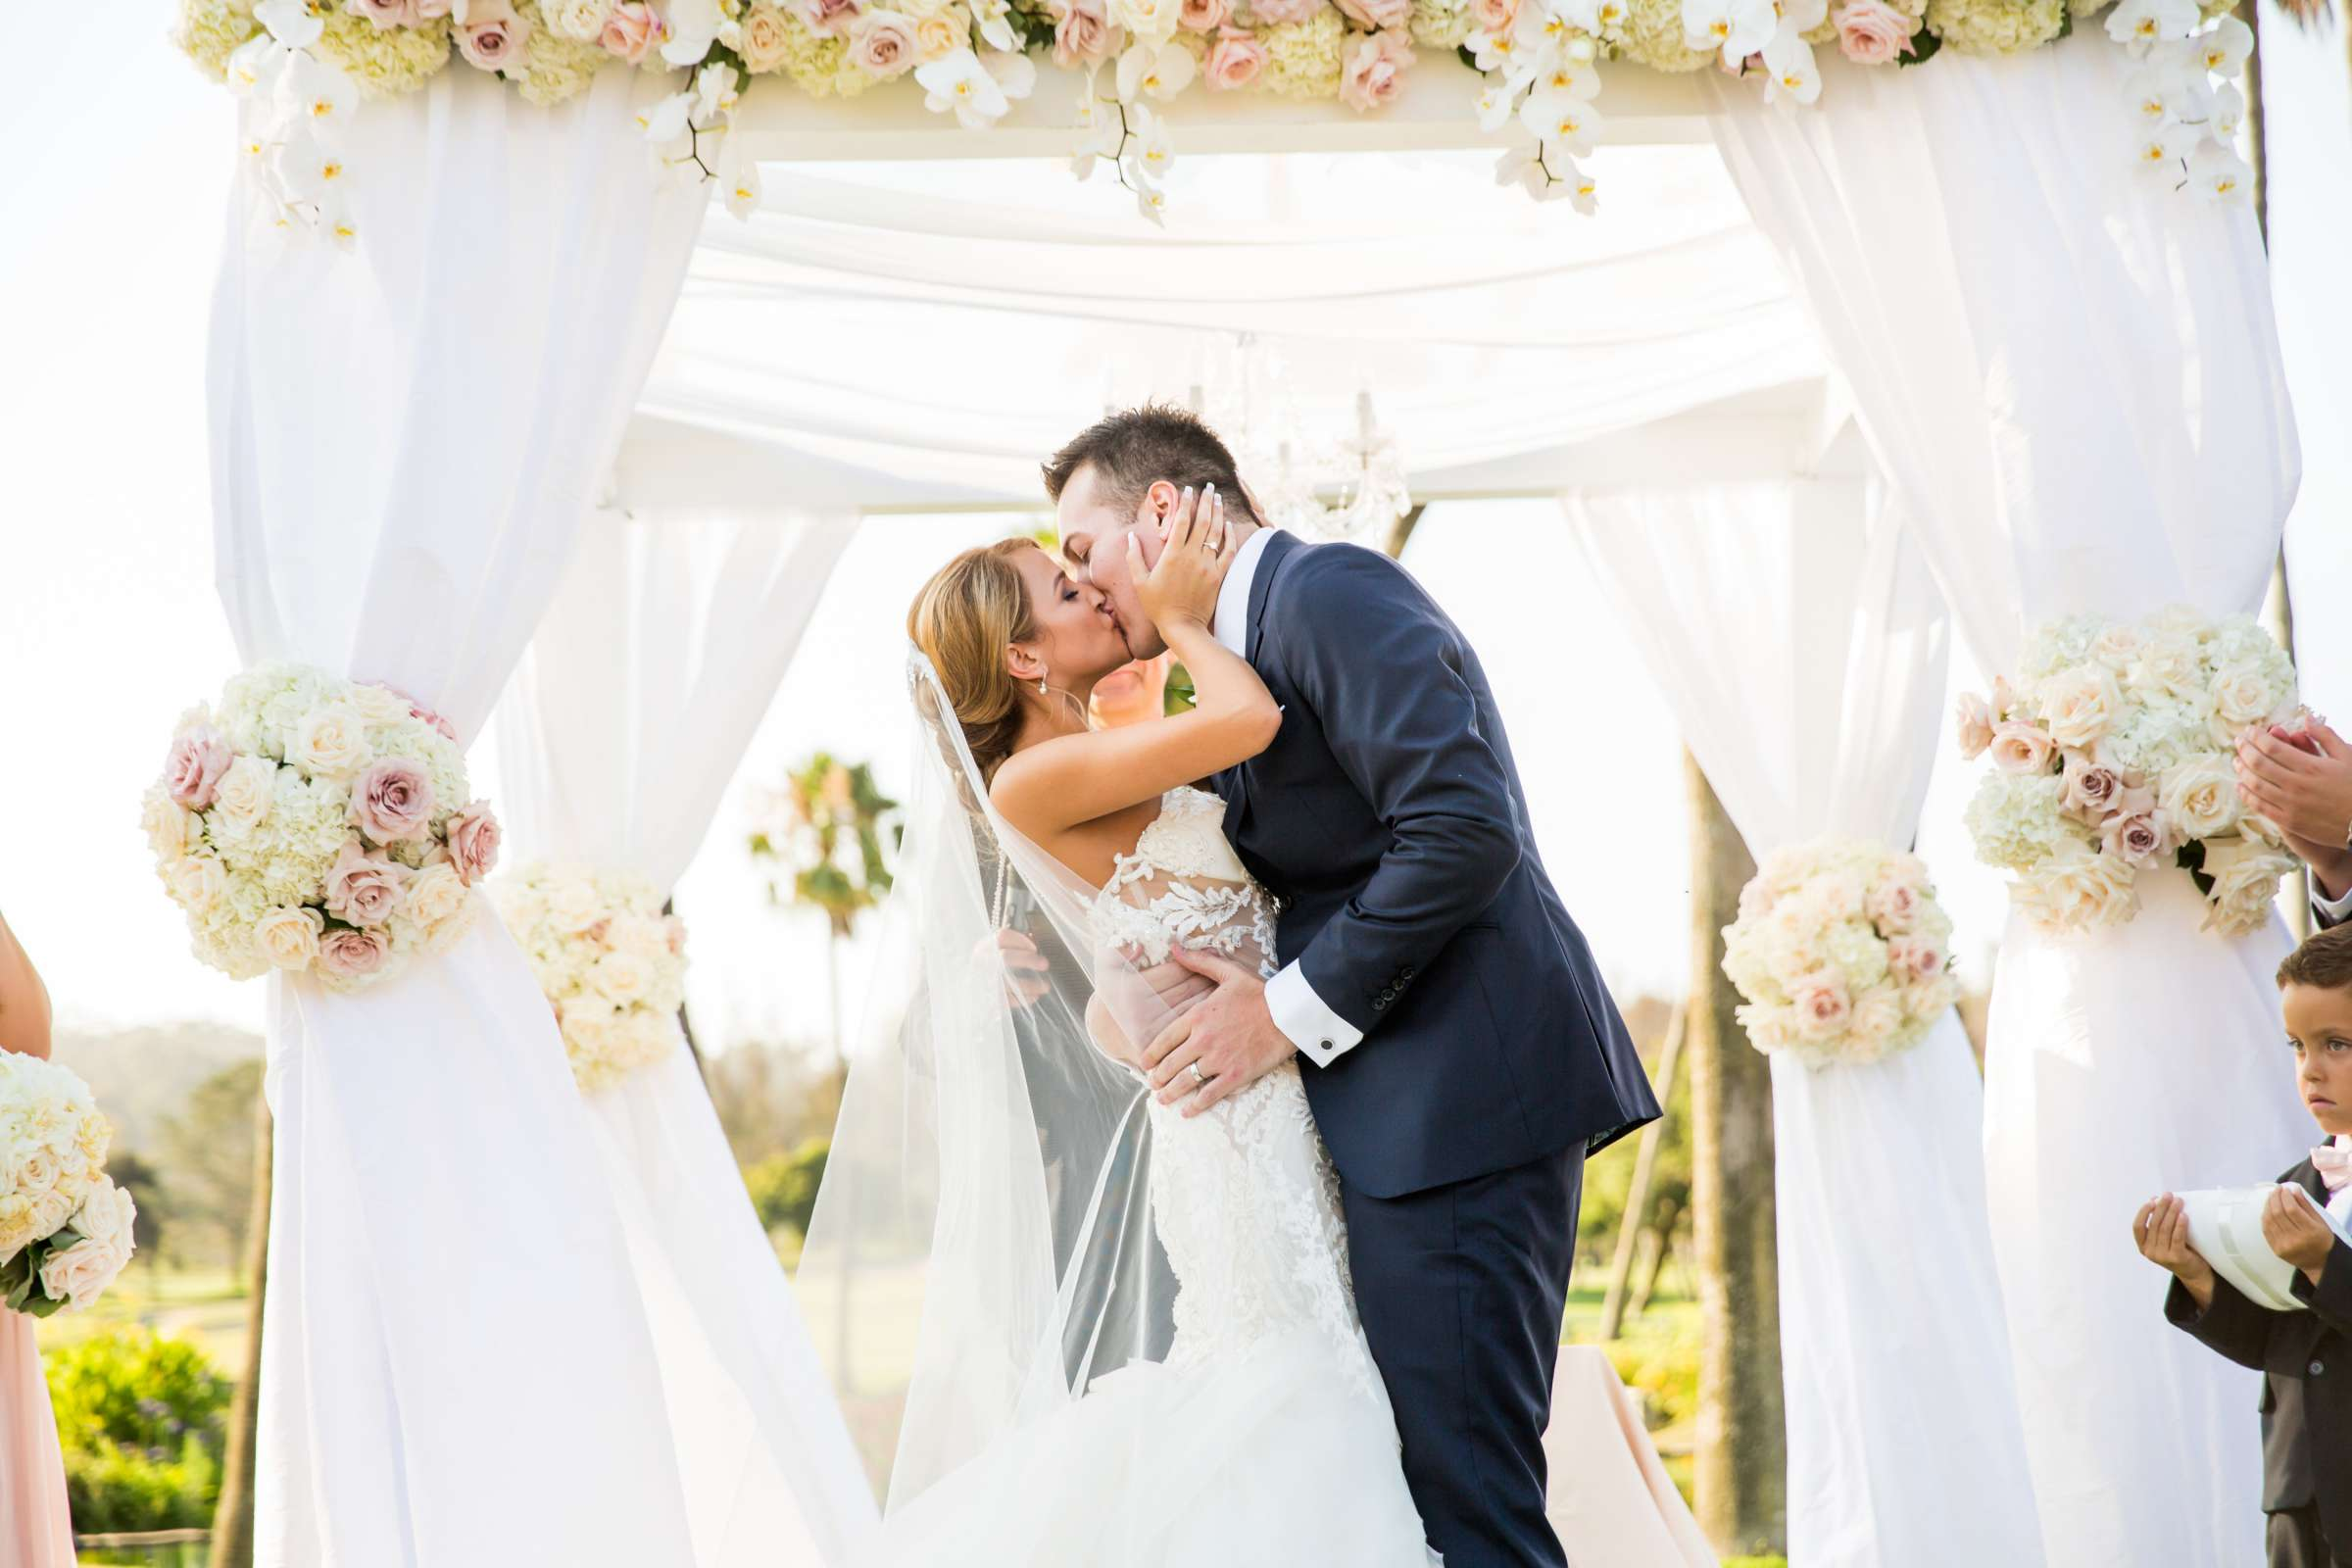 Fairbanks Ranch Country Club Wedding coordinated by Monarch Weddings, Gabriella and Kyle Wedding Photo #15 by True Photography